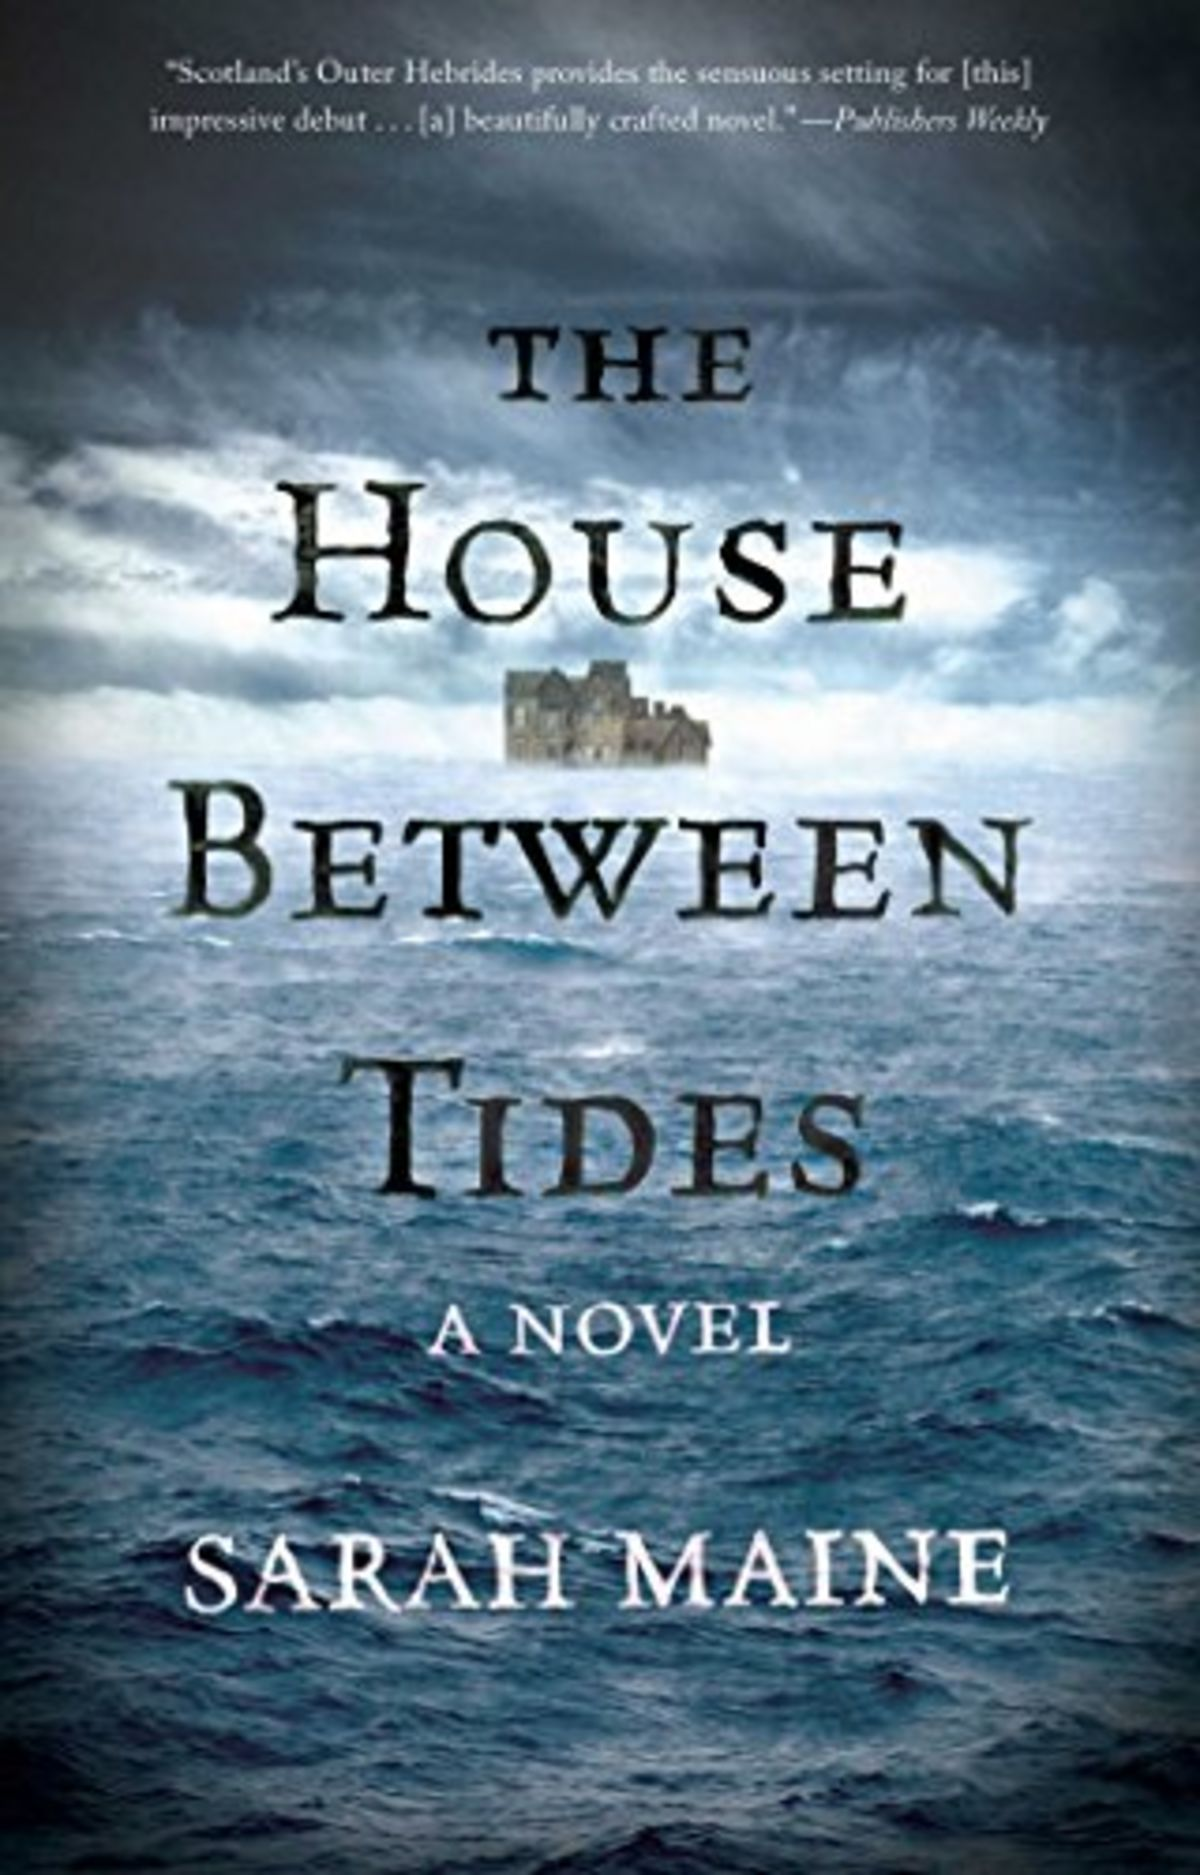 The House Between Tides